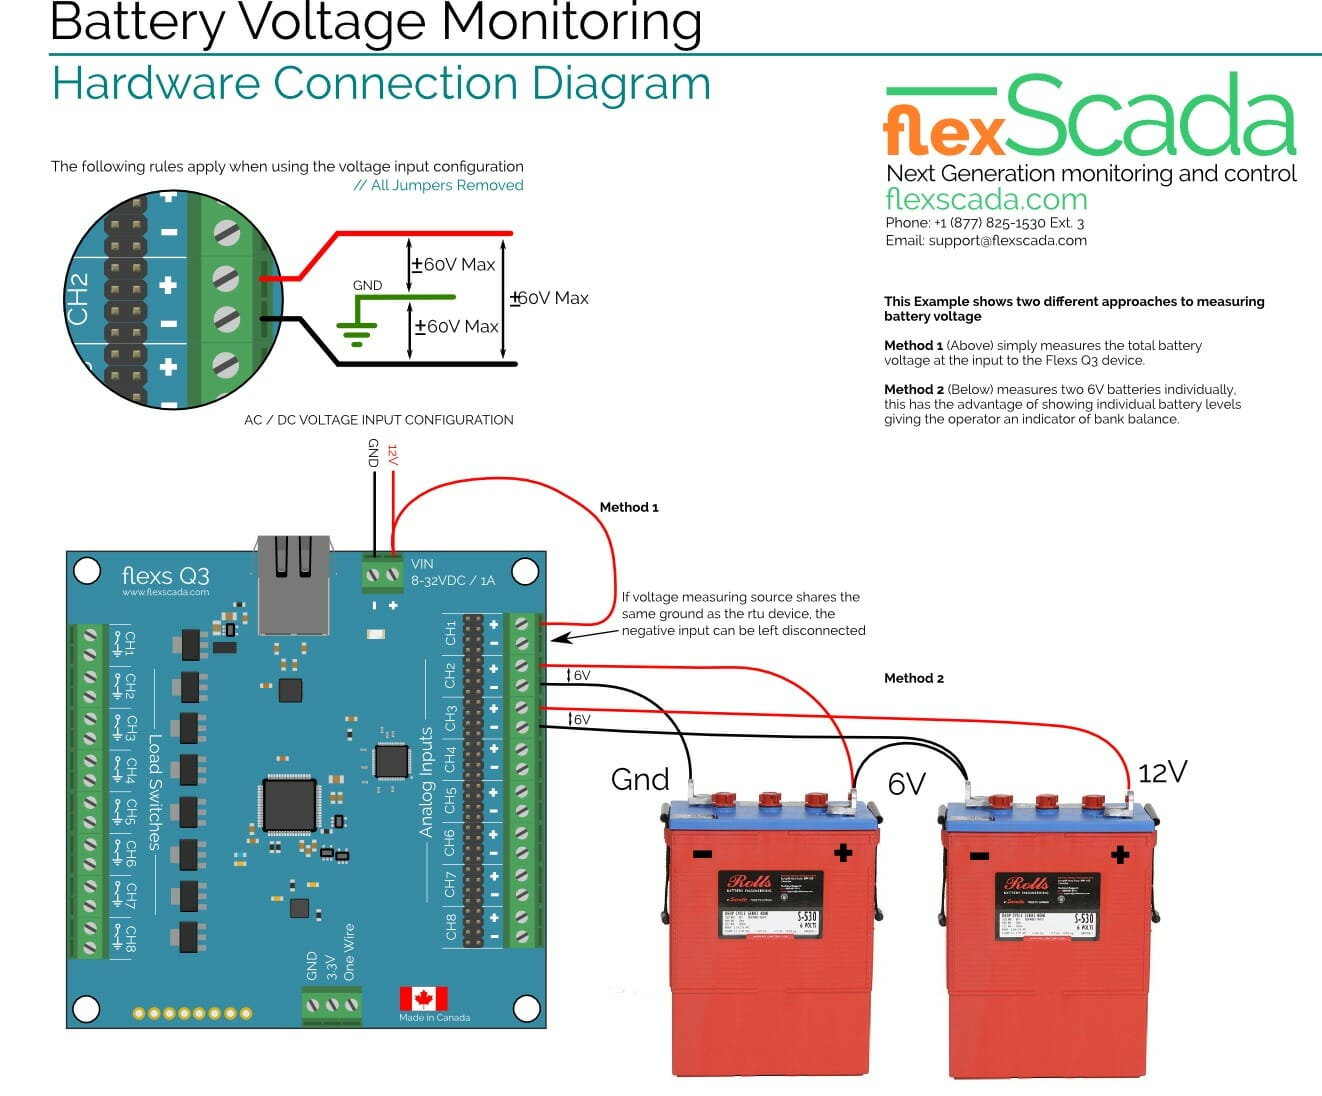 Monitoring Battery Voltage Over the Internet